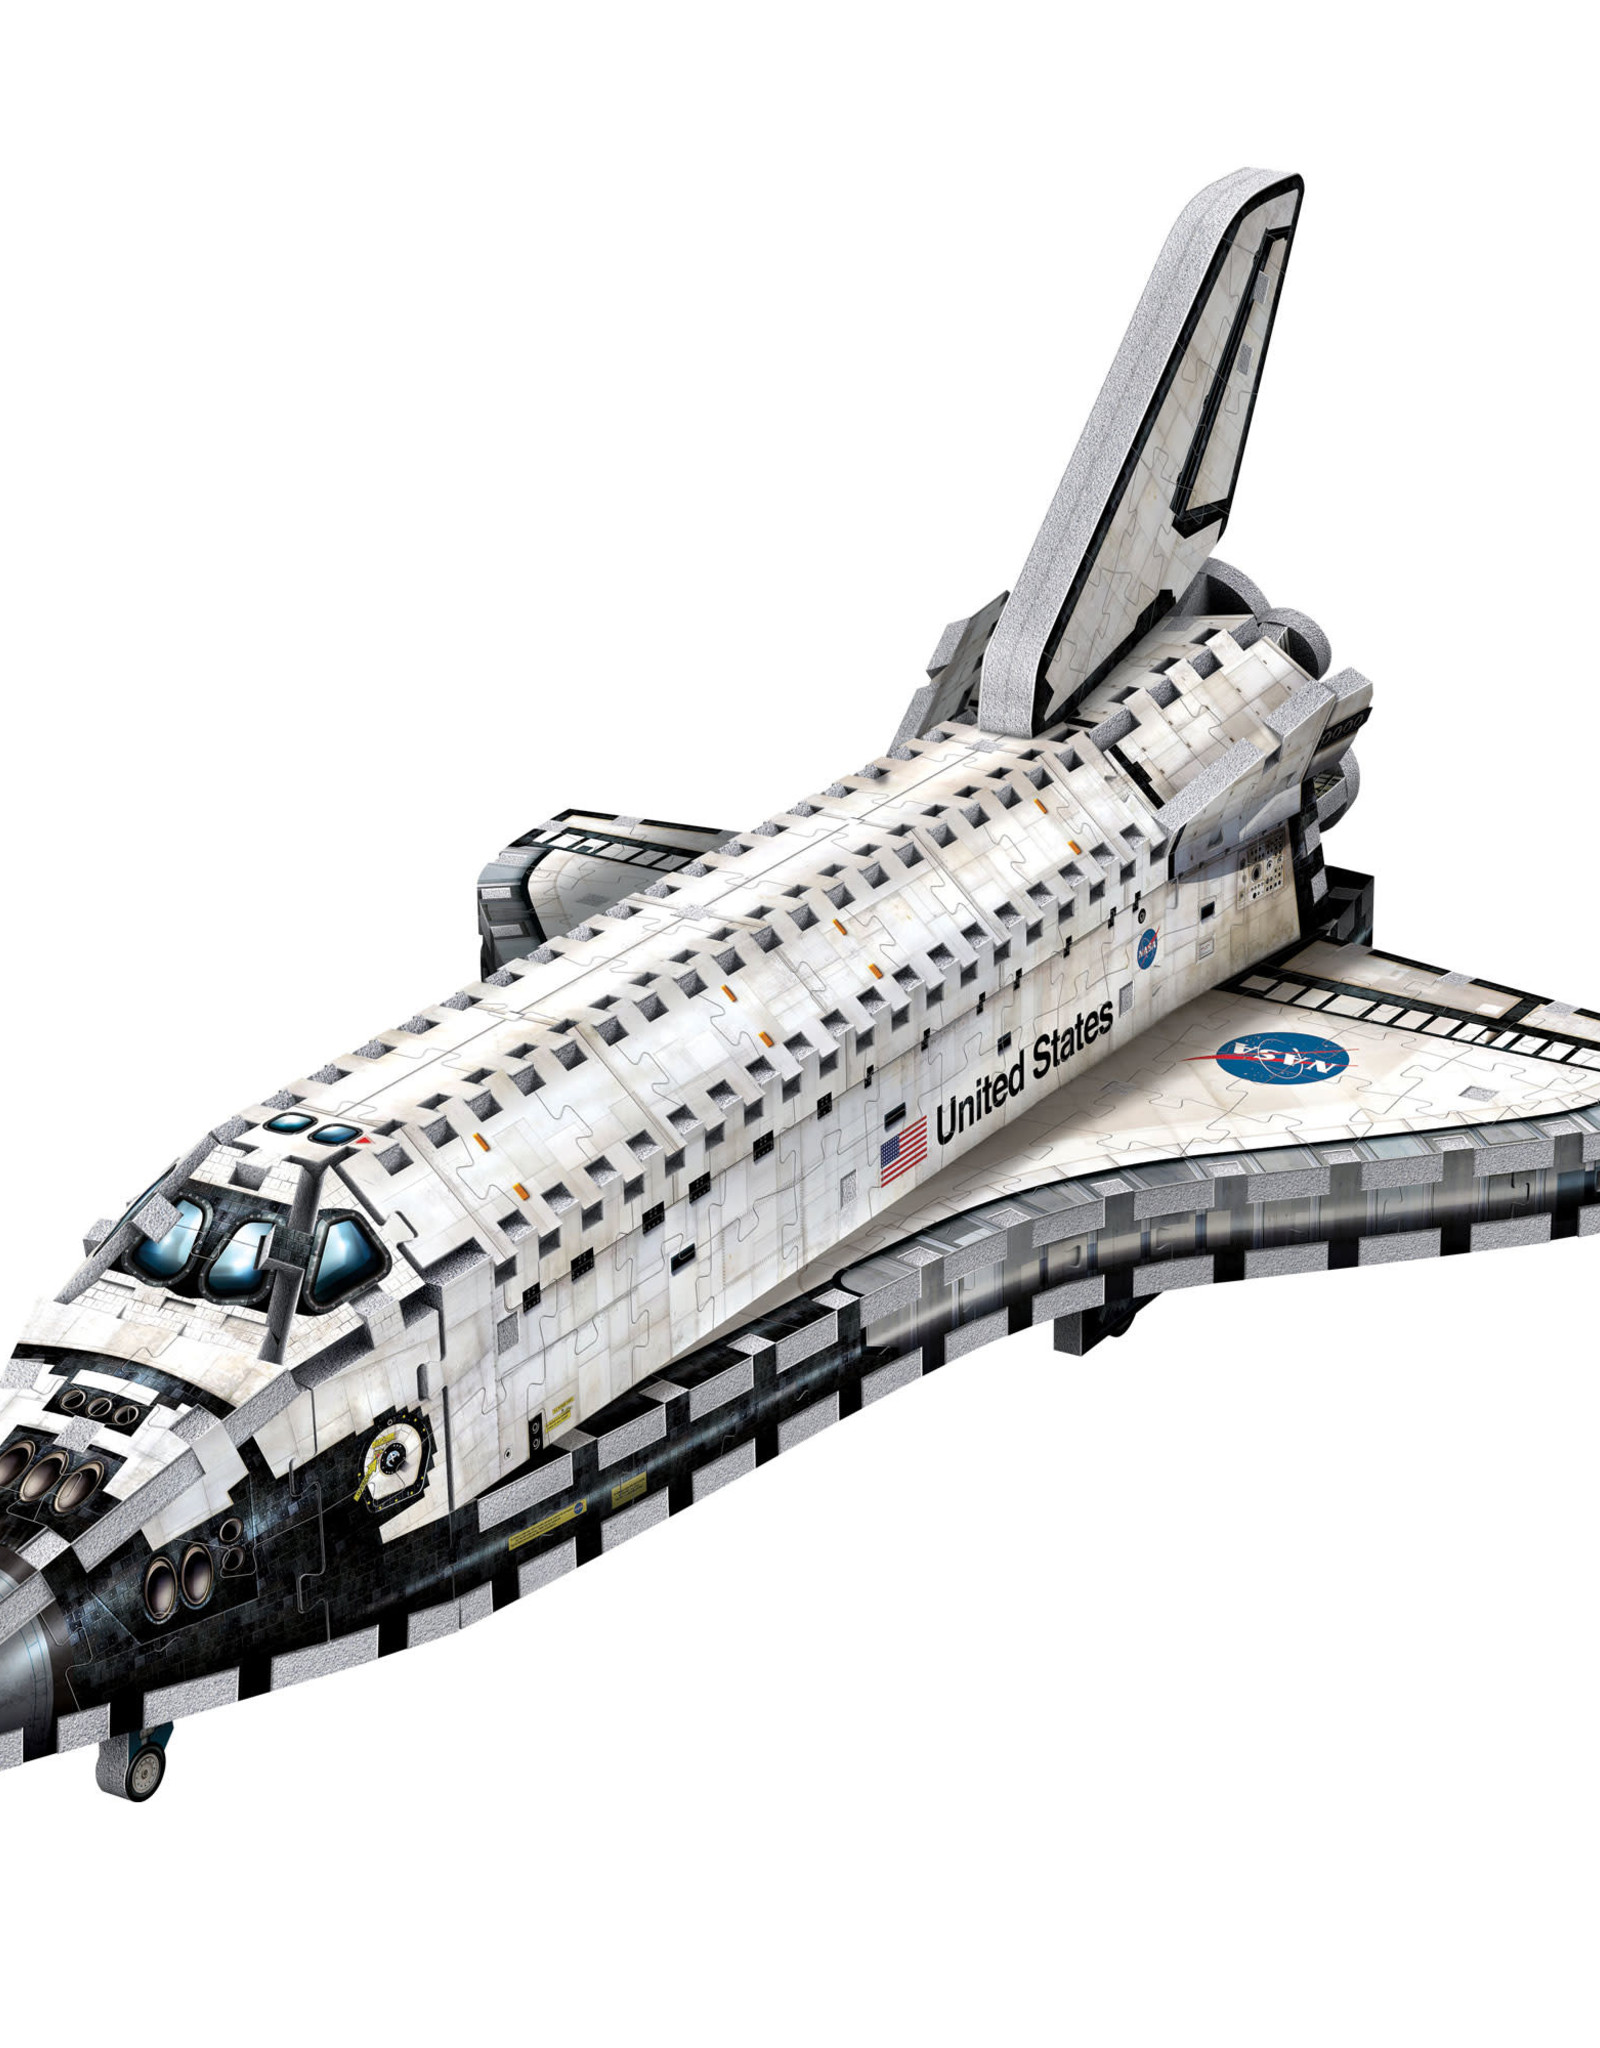 Wrebbit Space Shuttle Orbiter